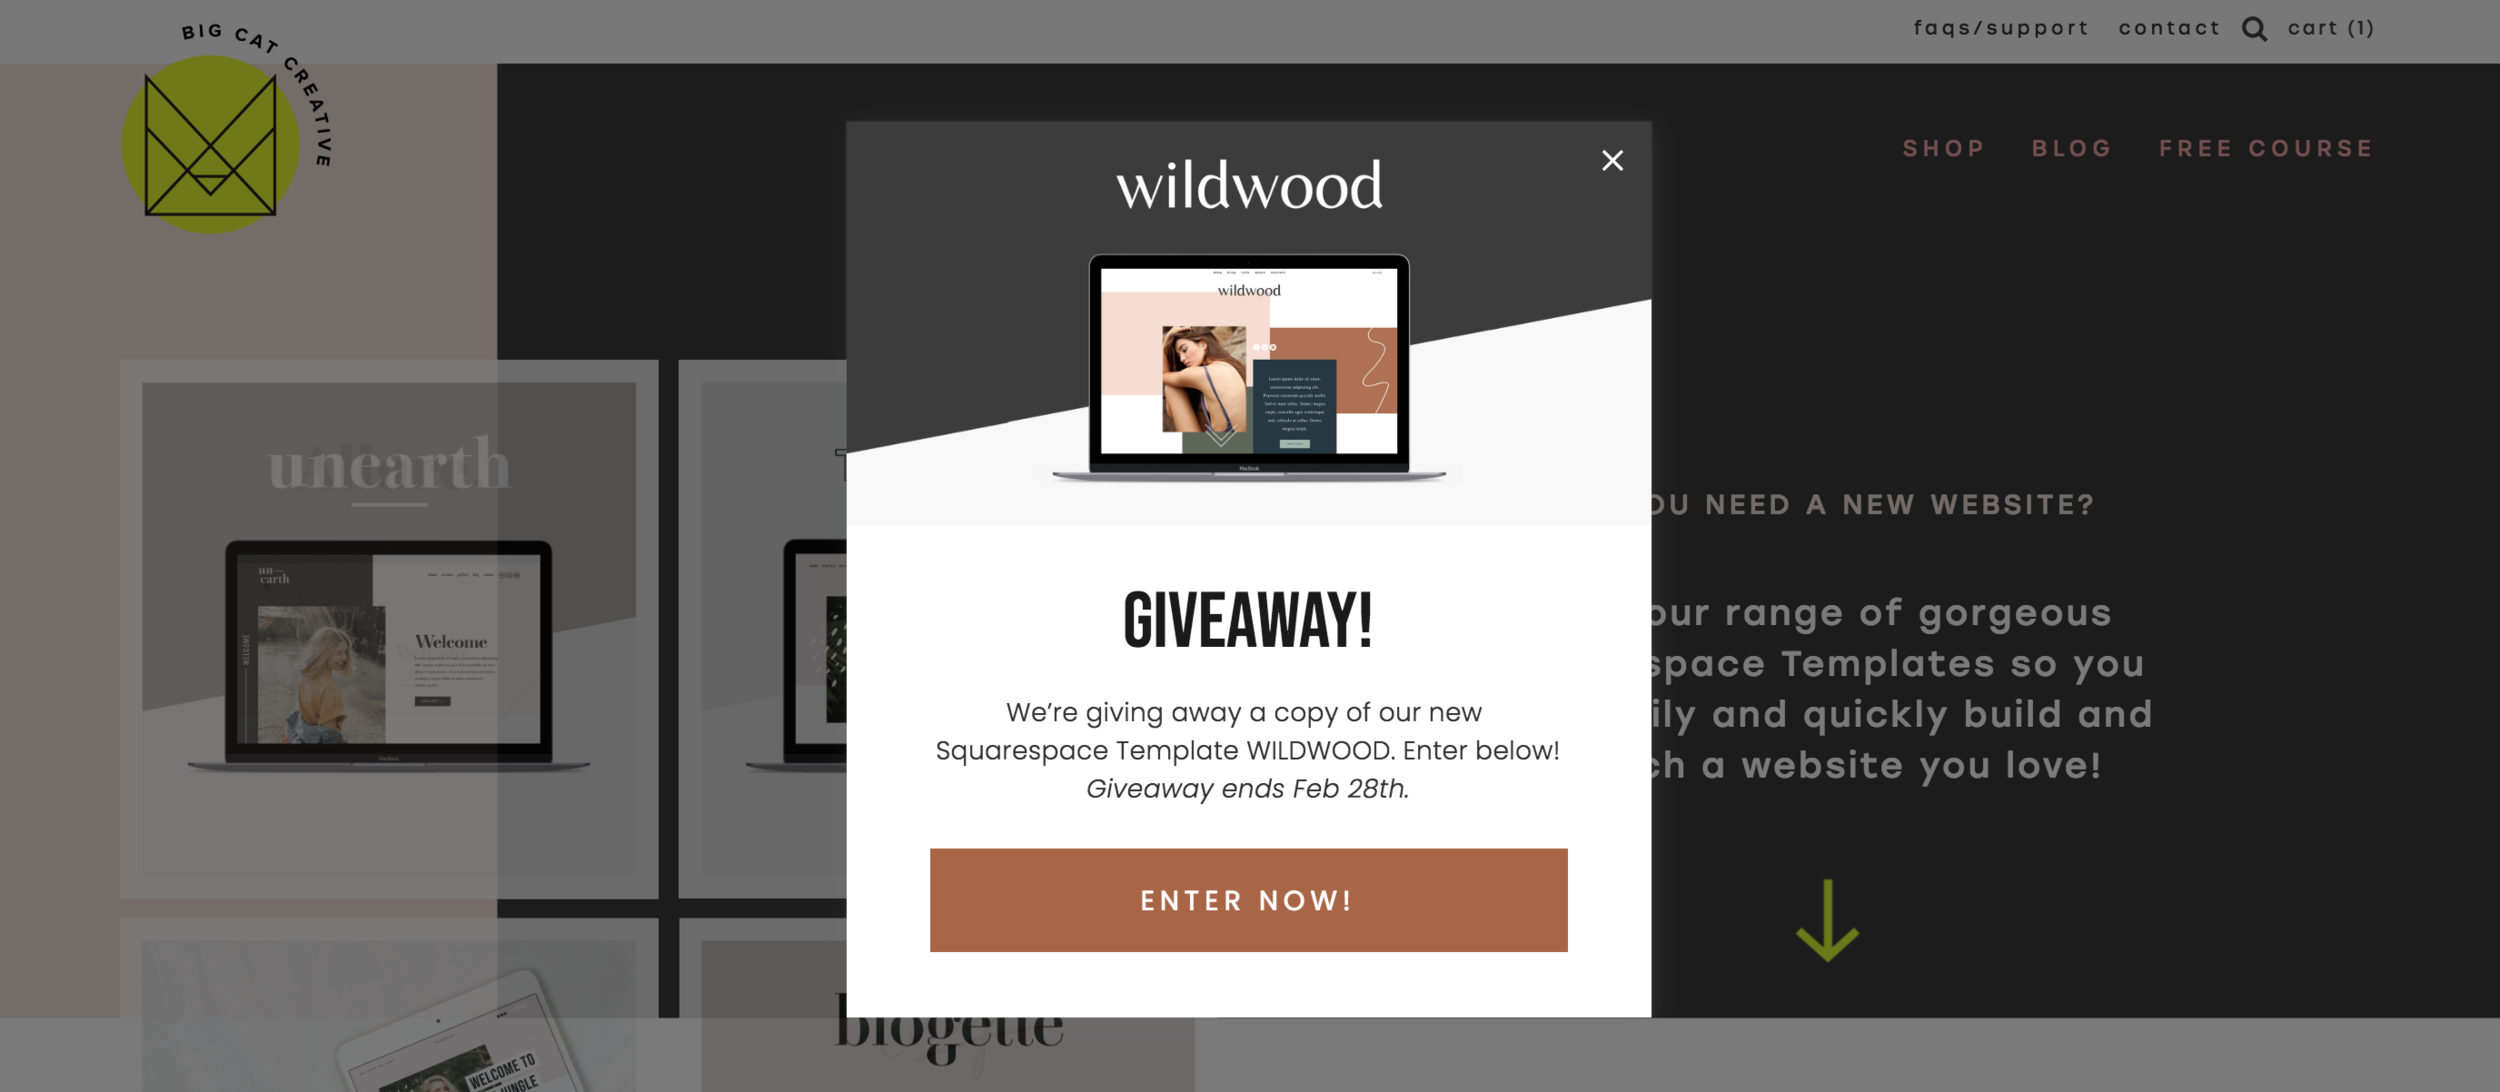 How to Add a Pop-Up in Squarespace - Big Cat Creative